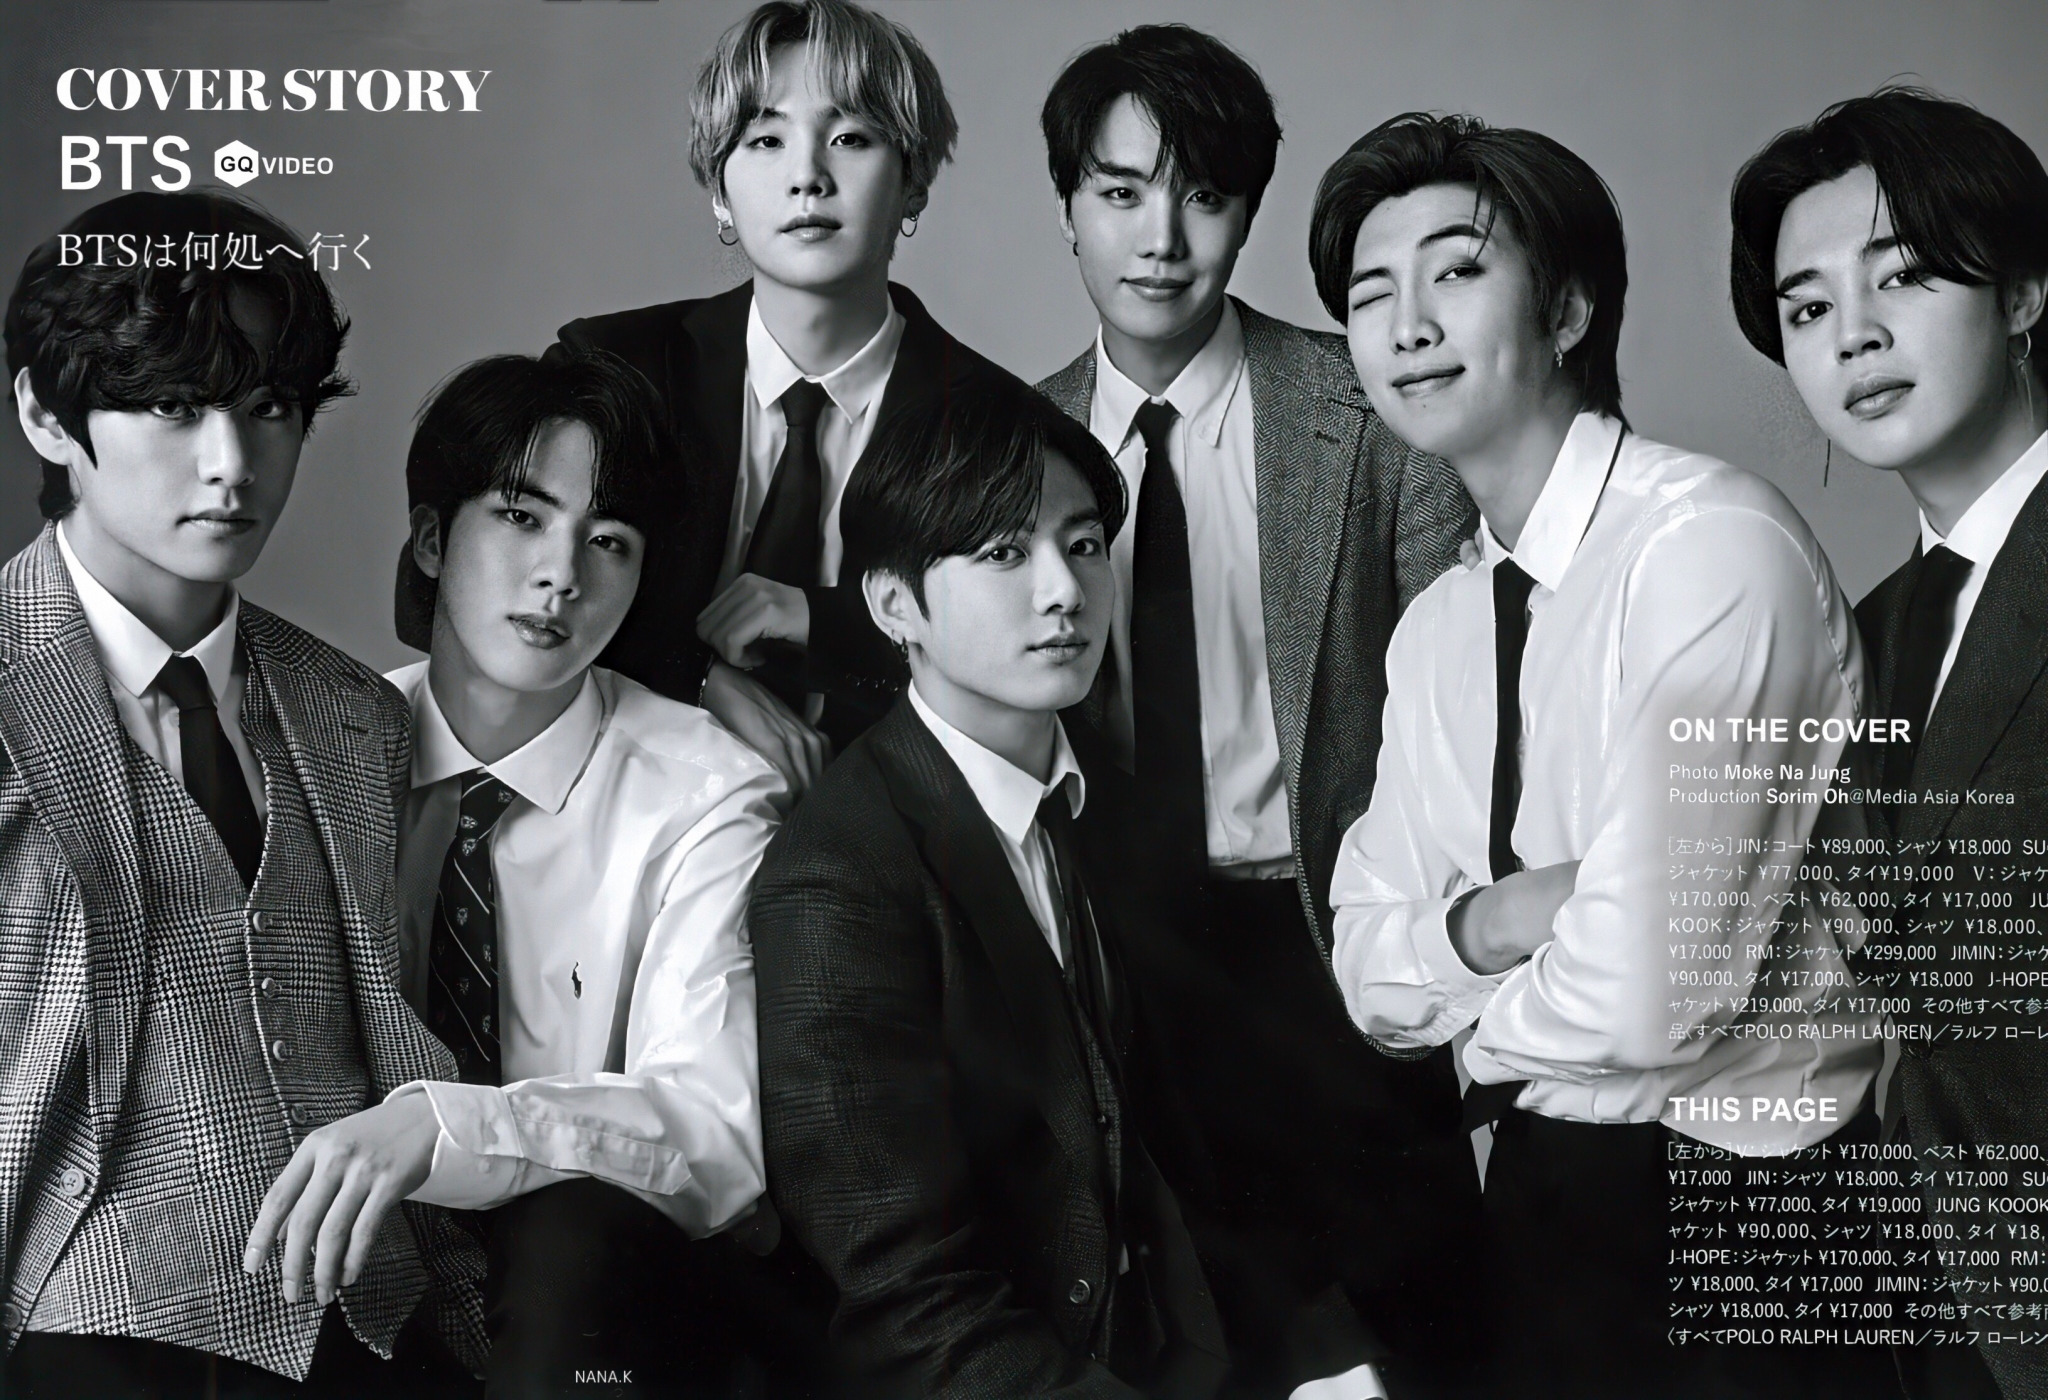 SCAN] ETHEREAL MEN IN SUITS | BTS X GQ JAPAN AUGUST 2020 - BTS Photo  (43510265) - Fanpop